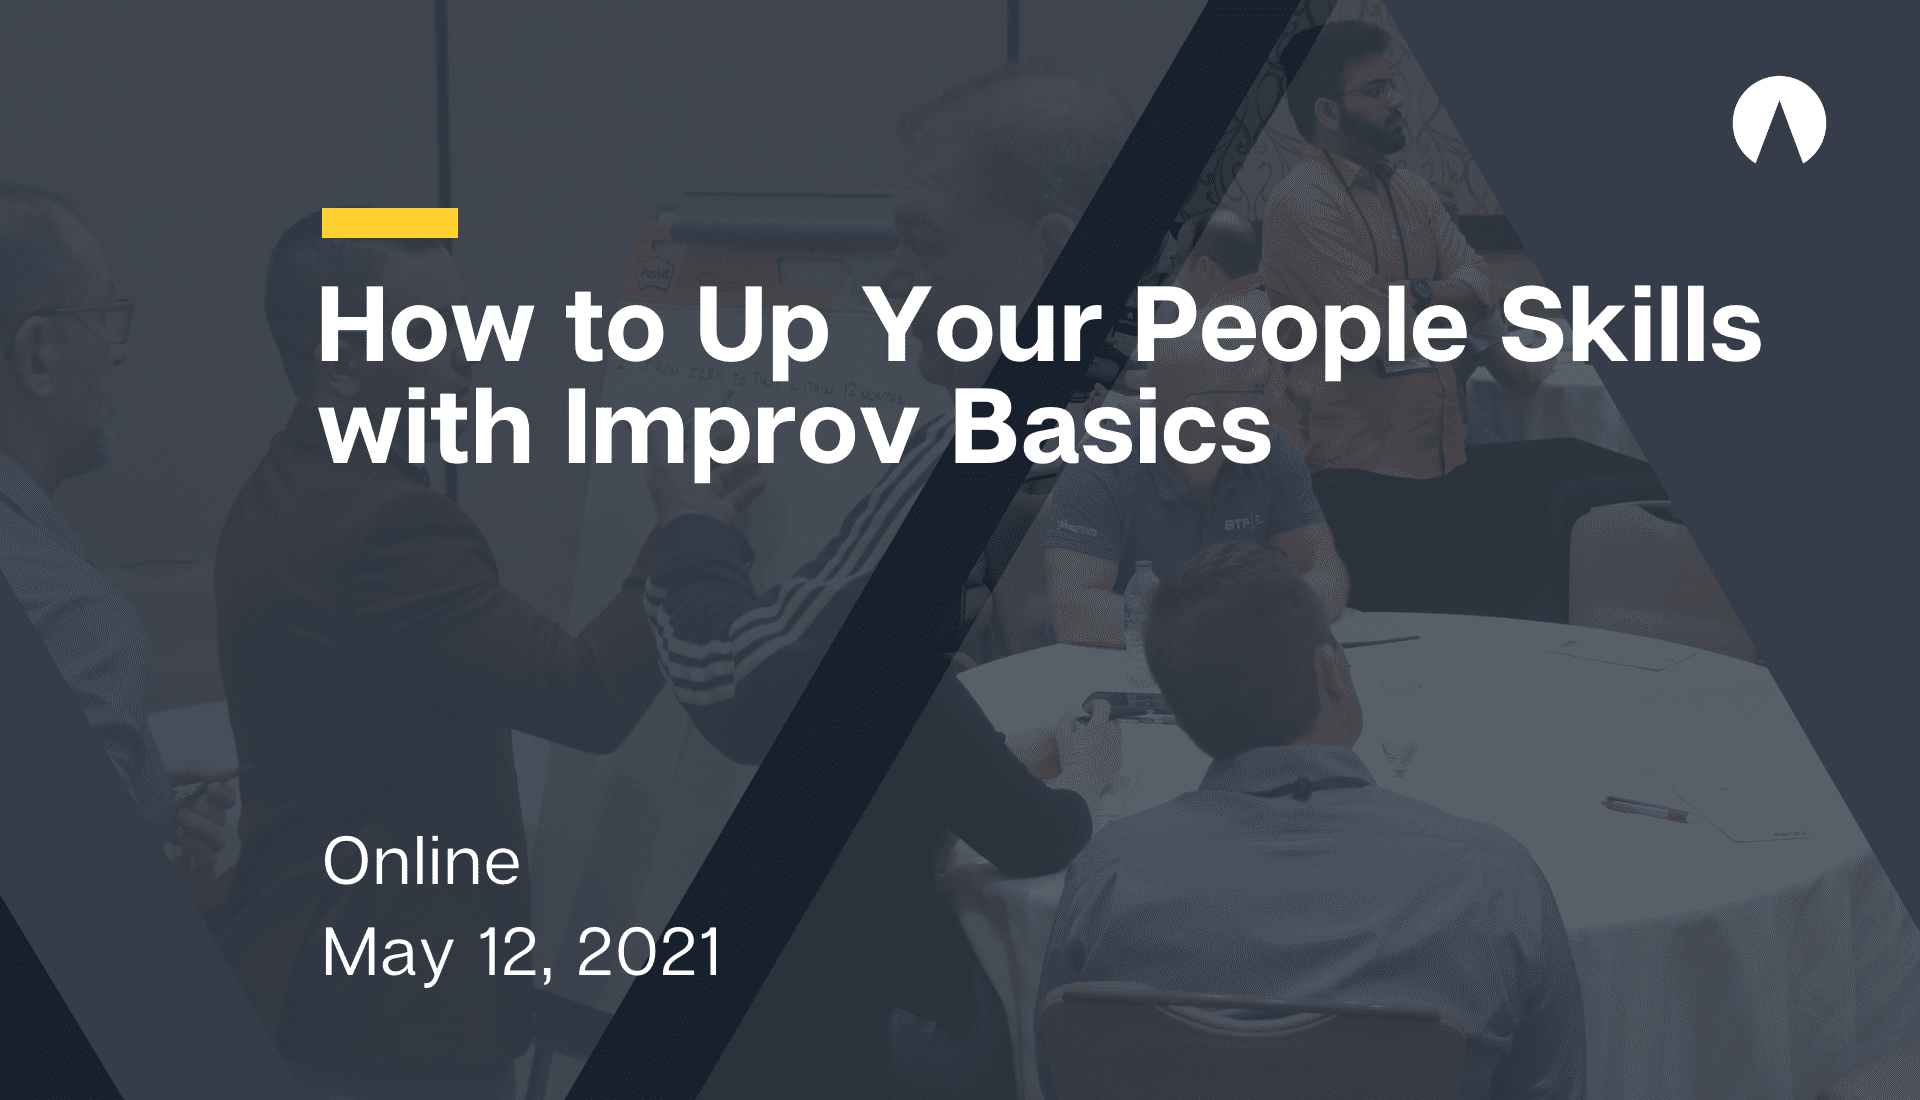 How to Up Your People Skills with Improv Basics